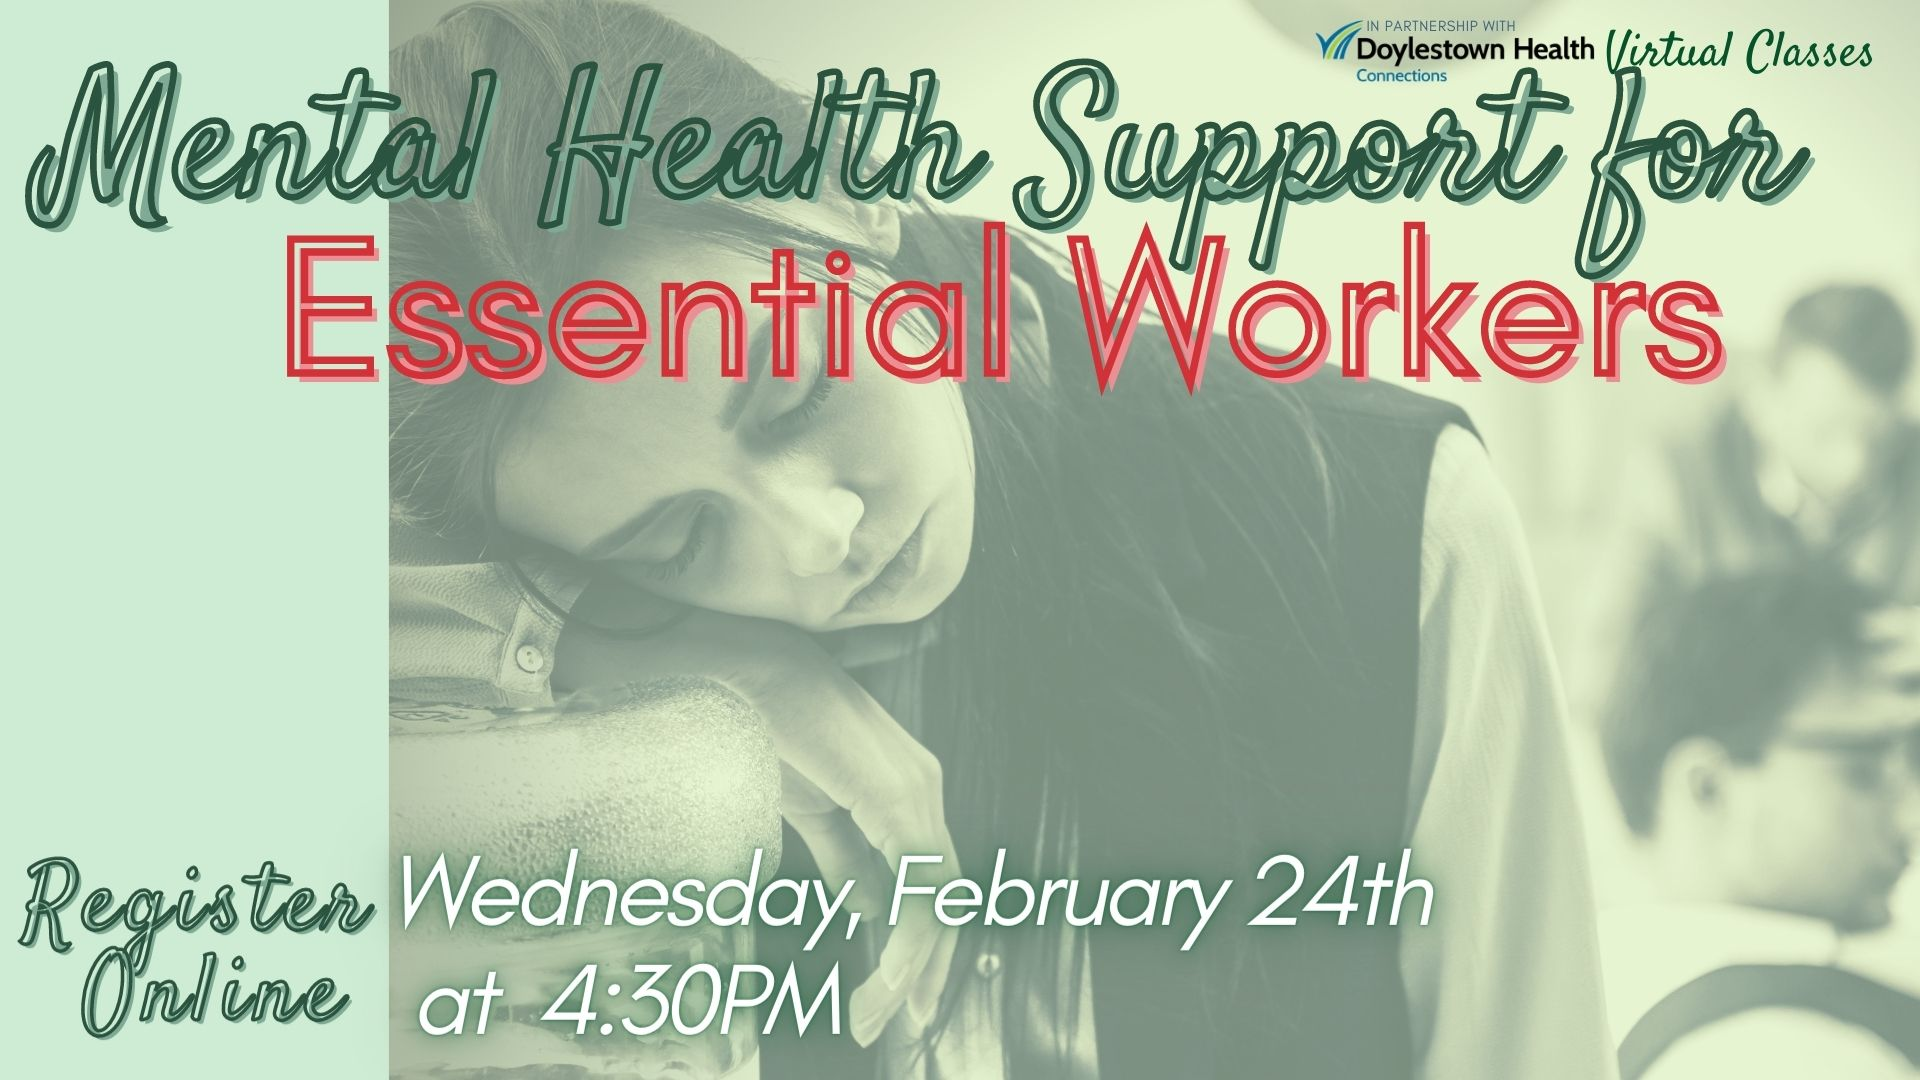 Mental Health Support for Essential Workers